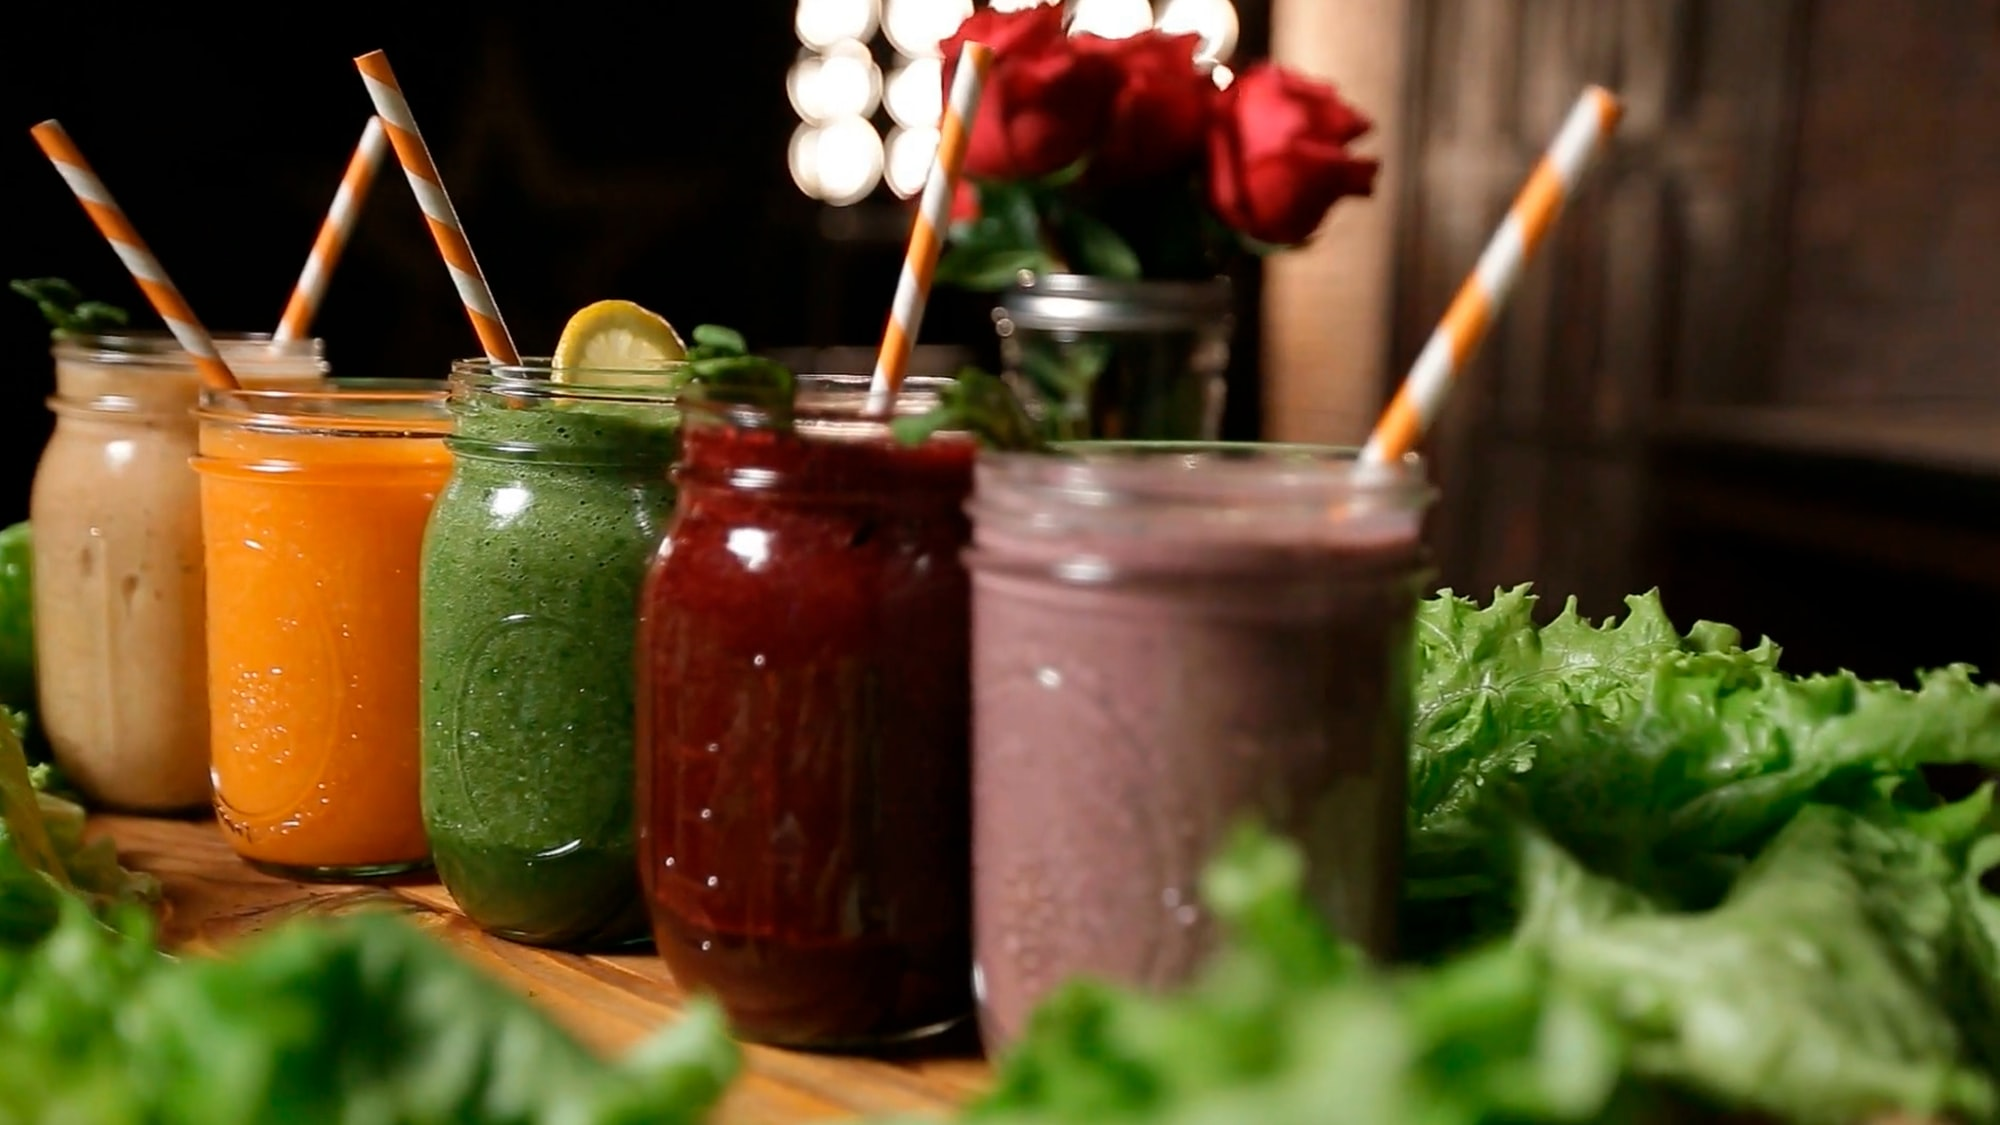 5 superfood smoothie ideas for a lazy afternoon